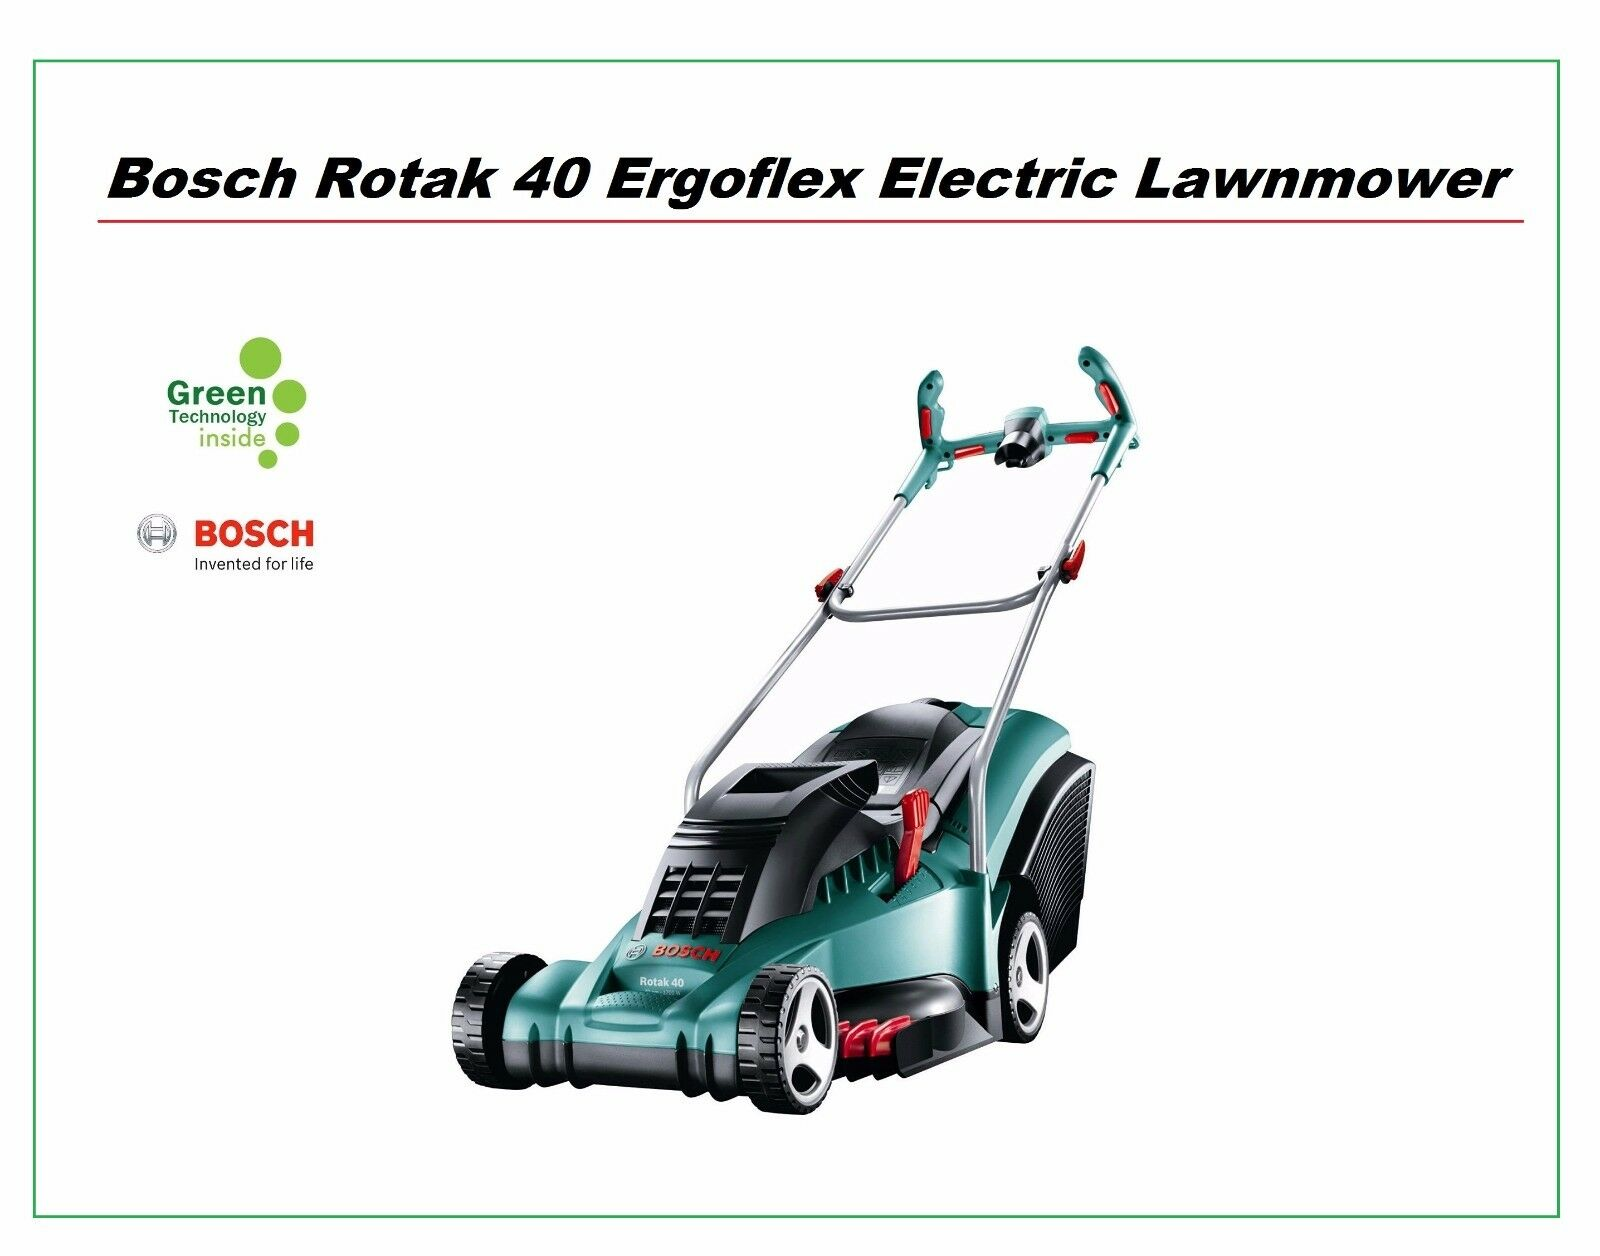 bosch rotak 40 17 ergoflex electric lawnmower 40cm metal blade and rear roller. Black Bedroom Furniture Sets. Home Design Ideas